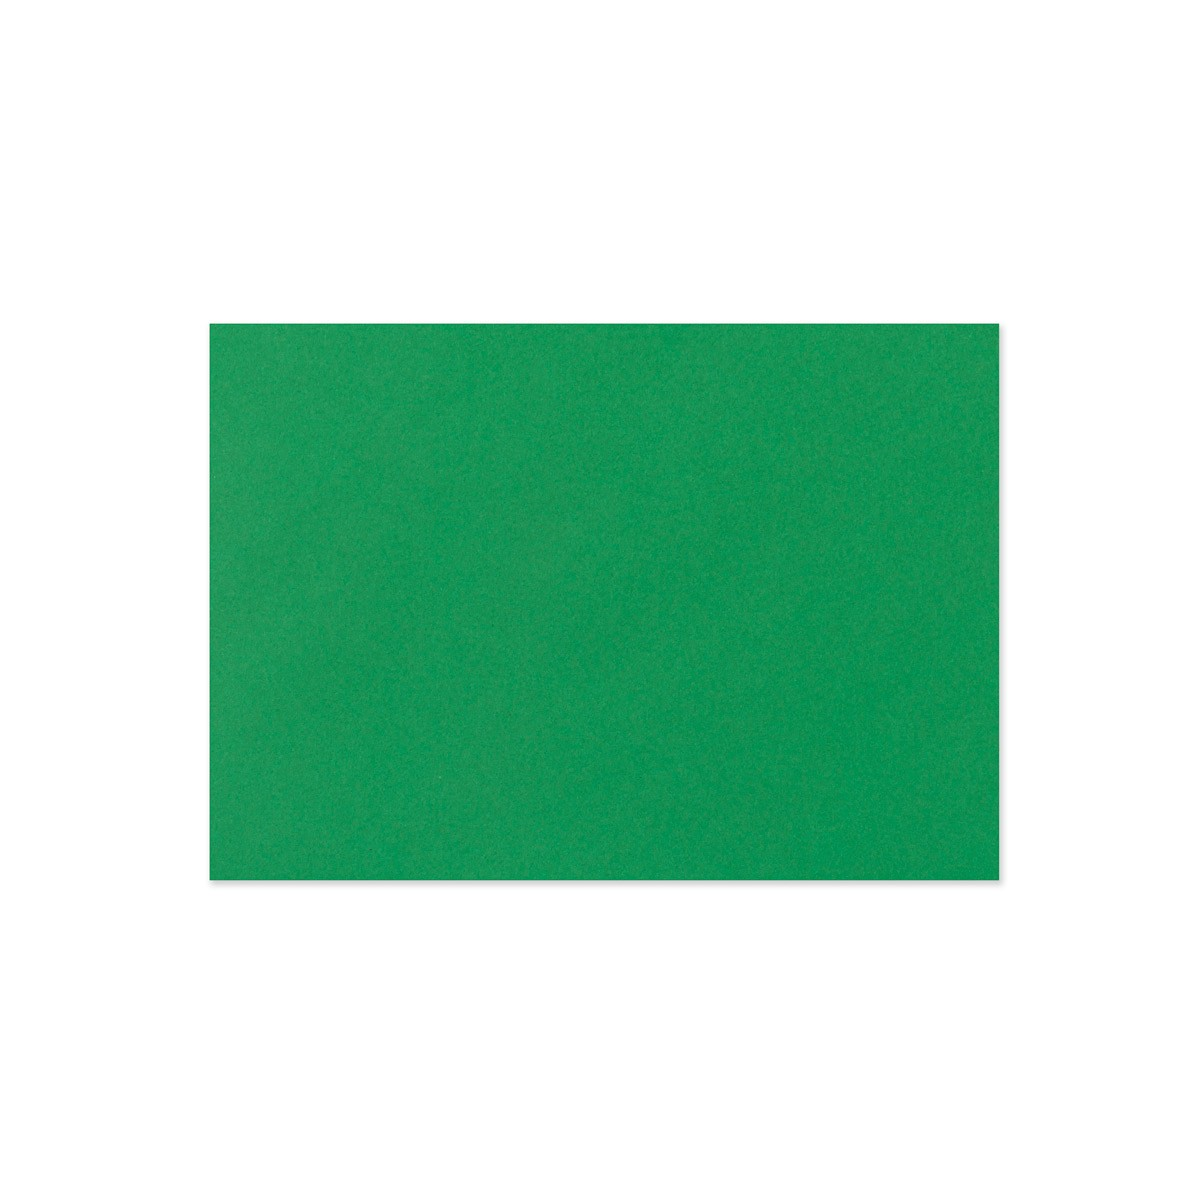 DARK GREEN 125 x 175 mm ENVELOPES 120GSM